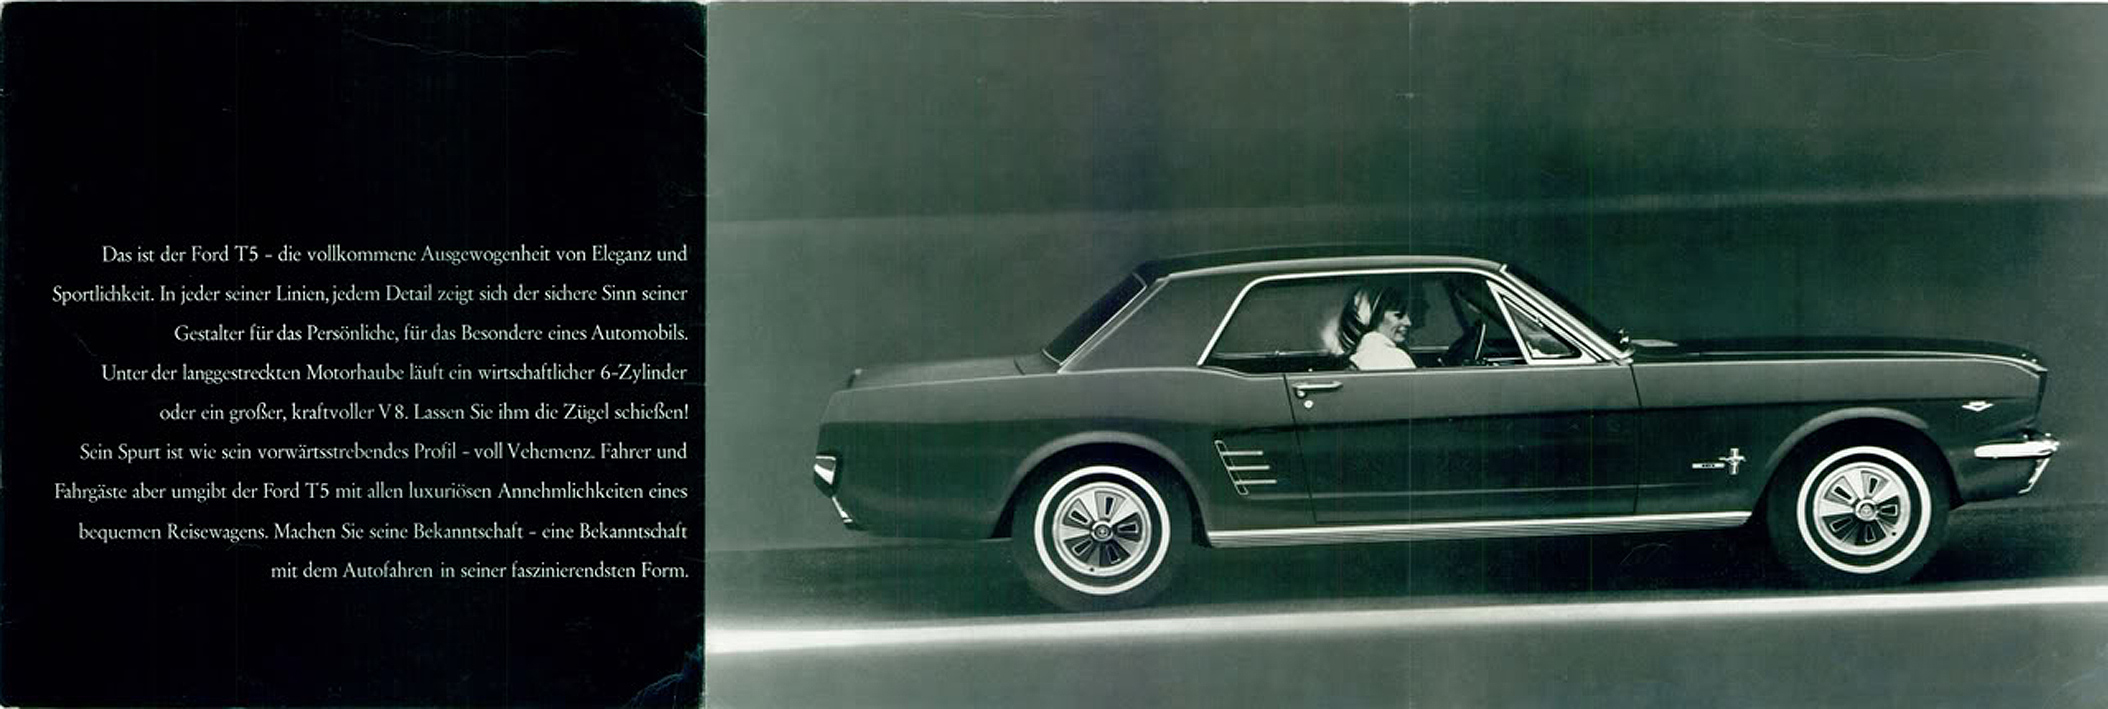 1966 Ford Mustang T5 Prospekt - Seite 2